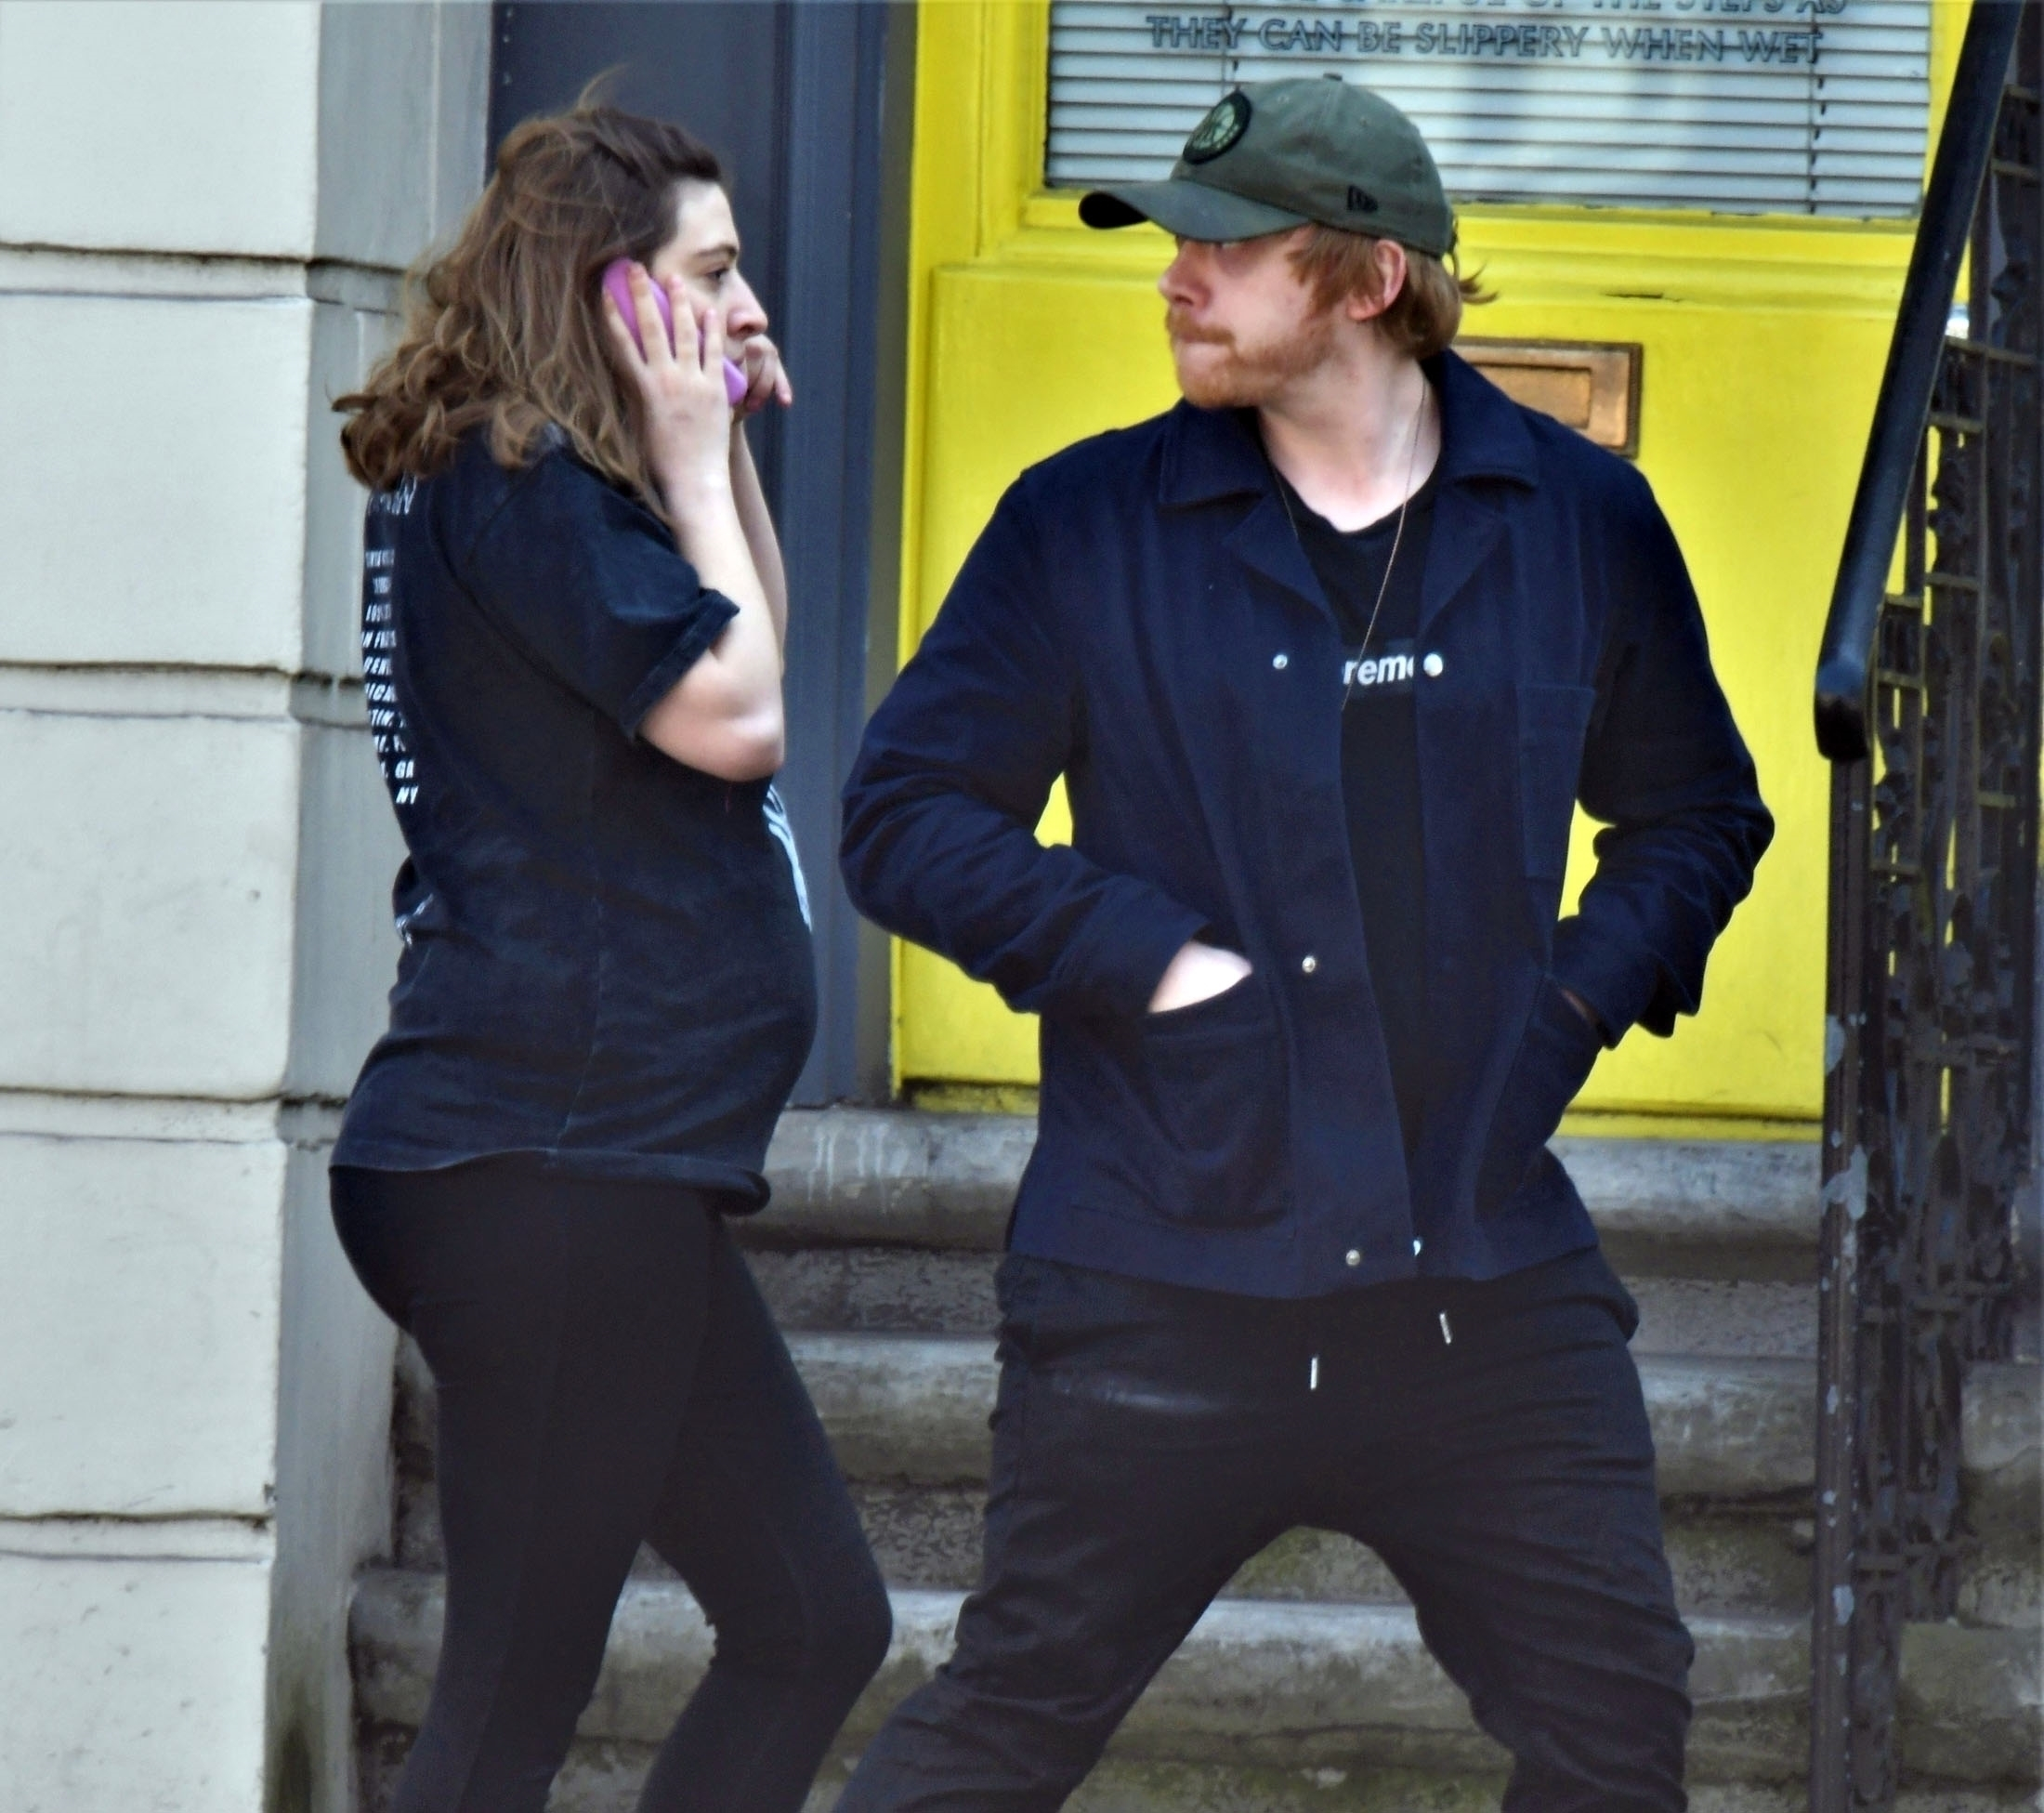 *EXCLUSIVE* Harry Potter actor Rupert Grint and partner Georgia Groome pictured out stocking up on some supplies during the Coronavirus lockdown in London.